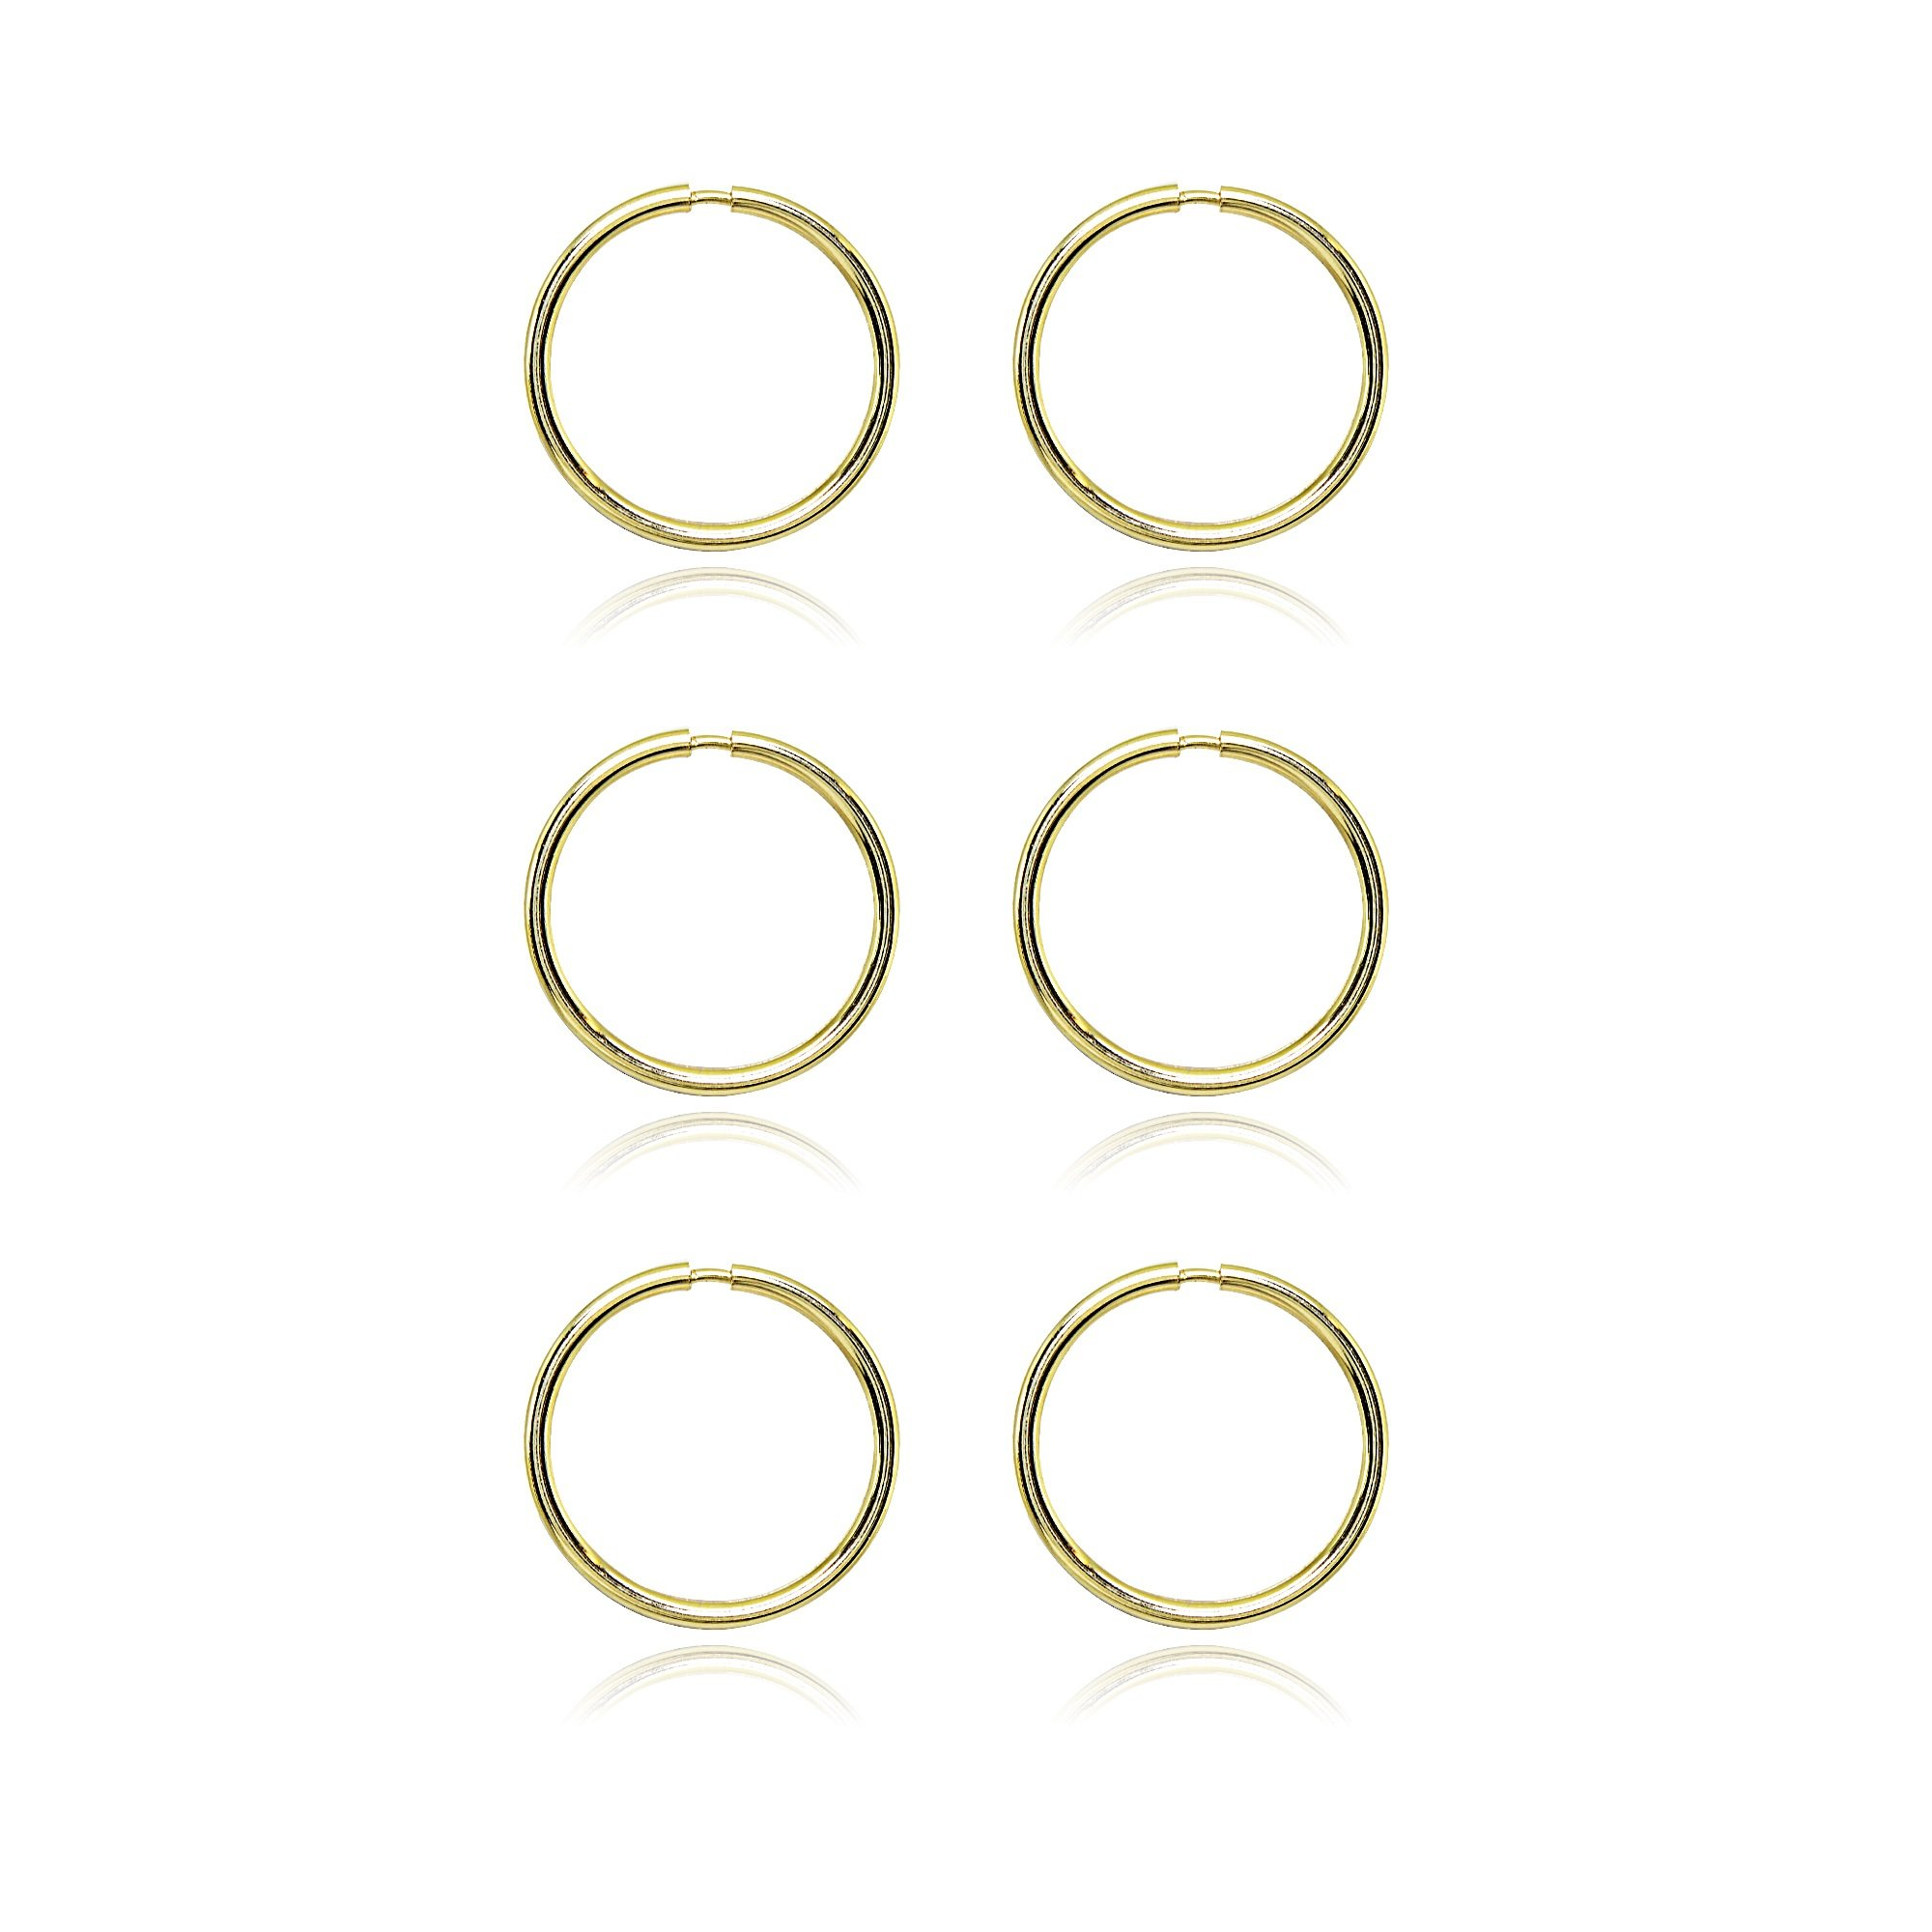 14K Gold Tiny Small Endless 10mm Thin Round Lightweight Unisex Hoop Earrings, Set of 3 Pairs by Hoops 4 Less (Image #3)